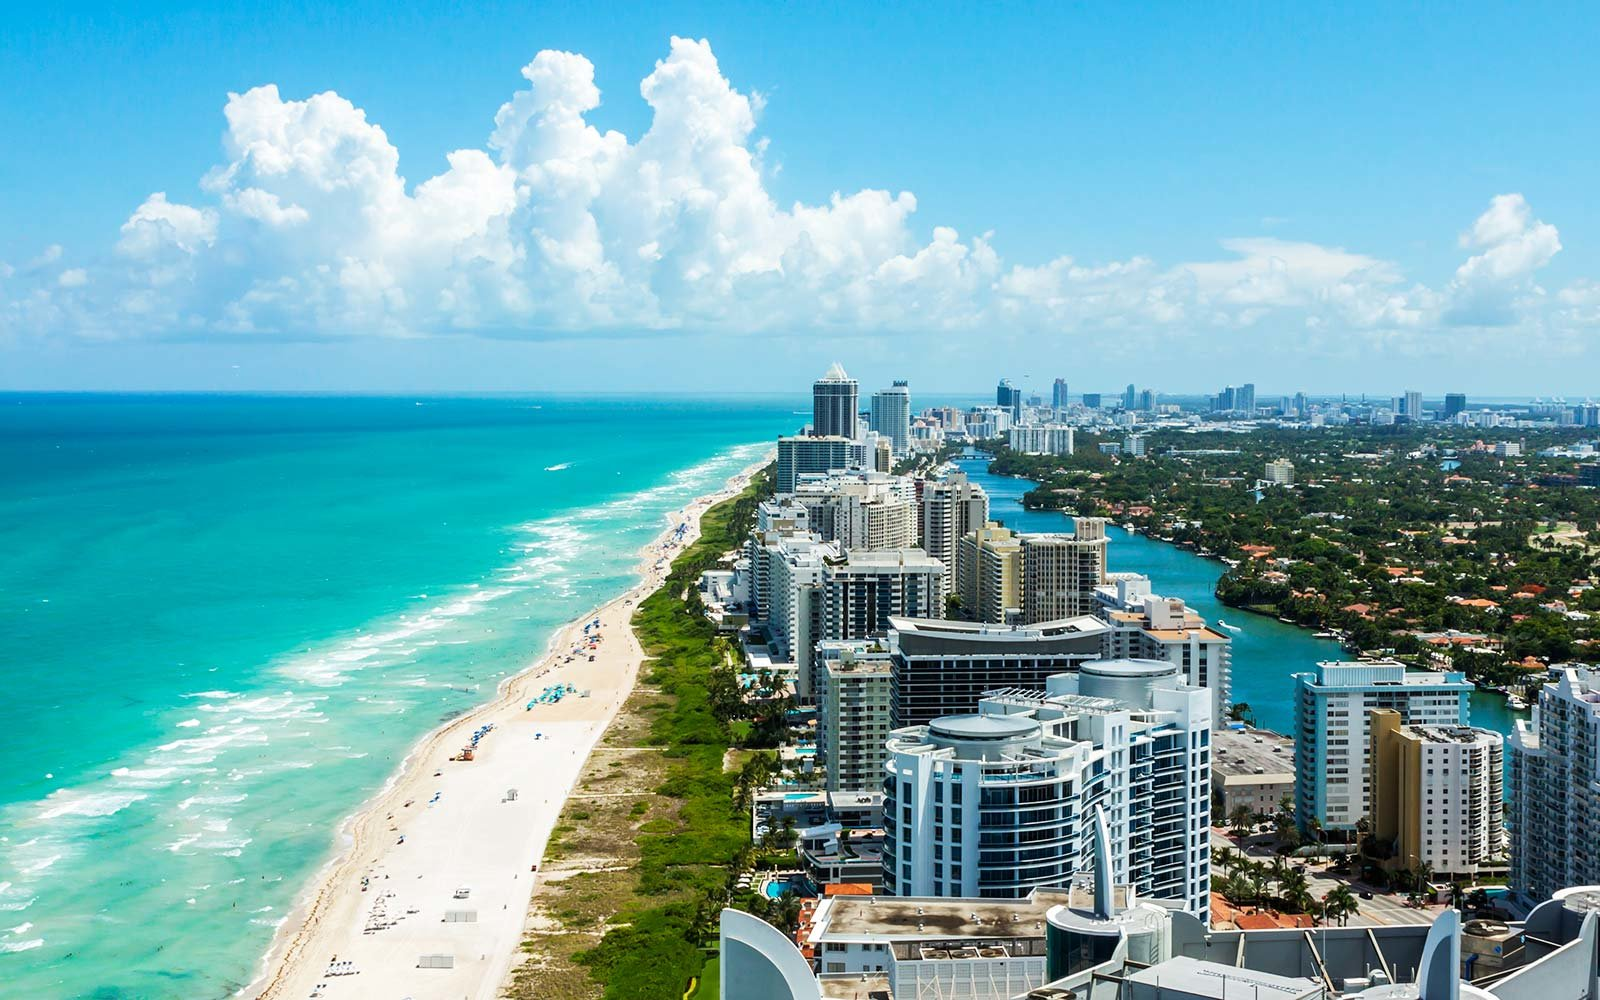 Looking down South Beach in Miami Florida